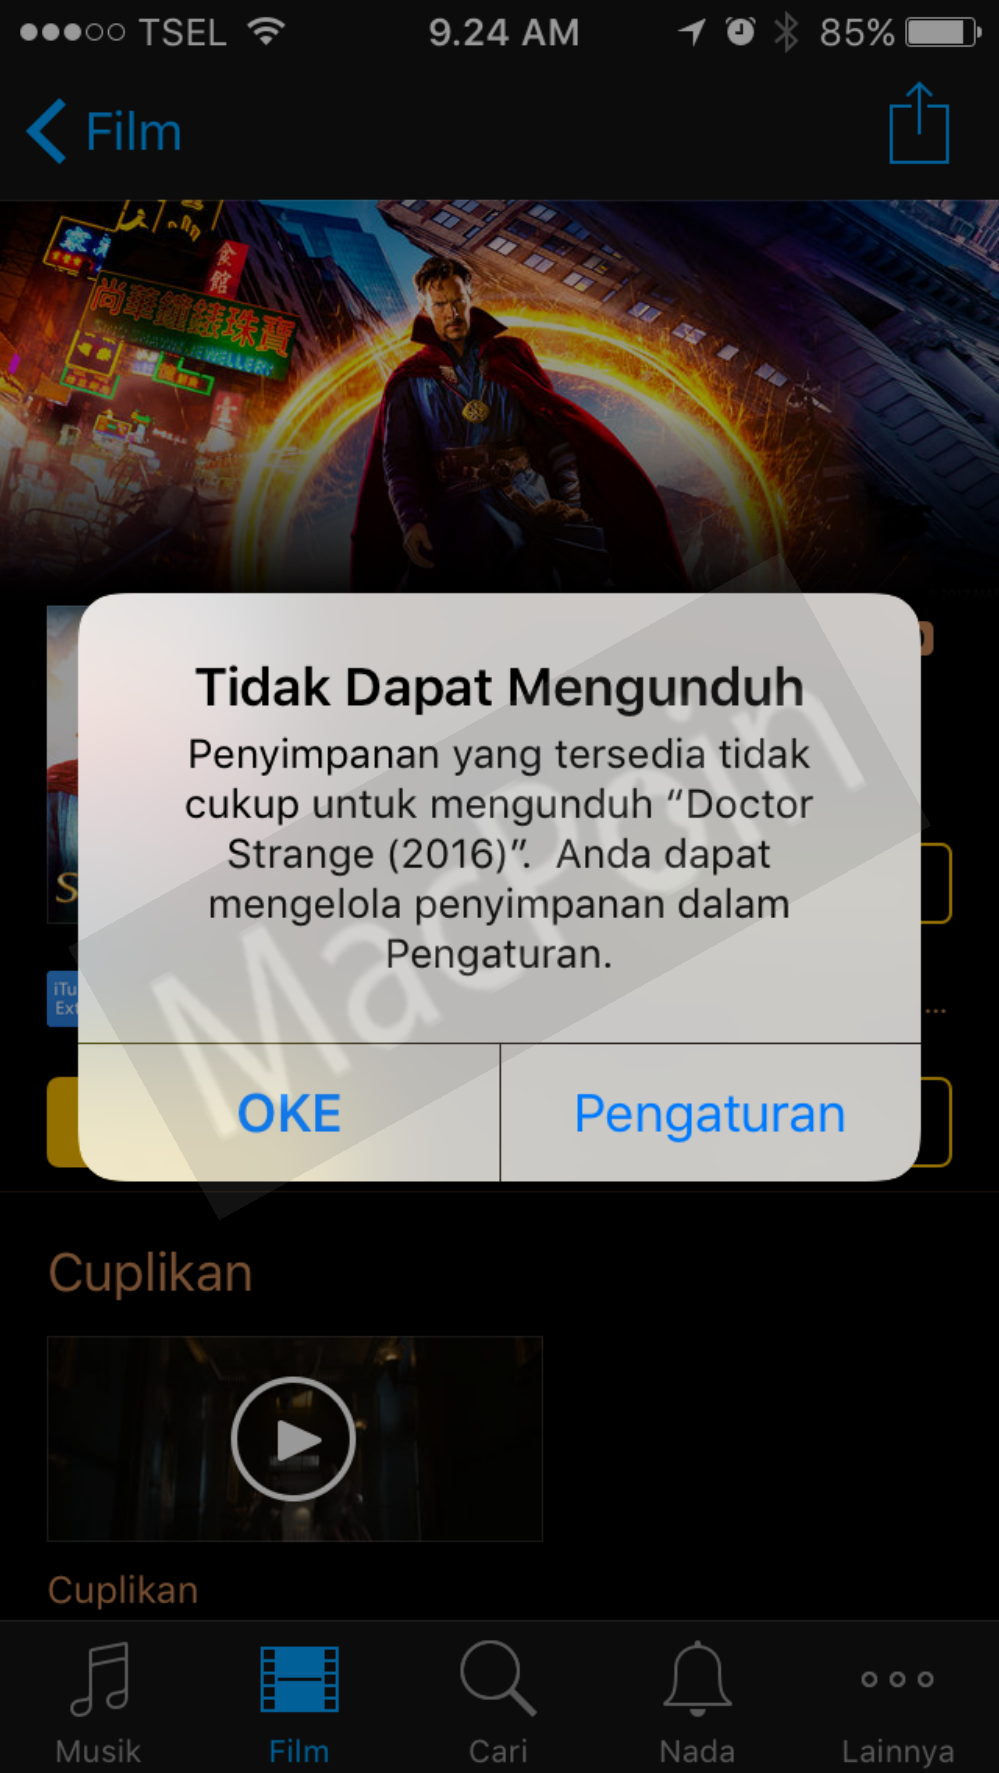 Tutorial Cara Hapus File Other di iPhone dan iPad